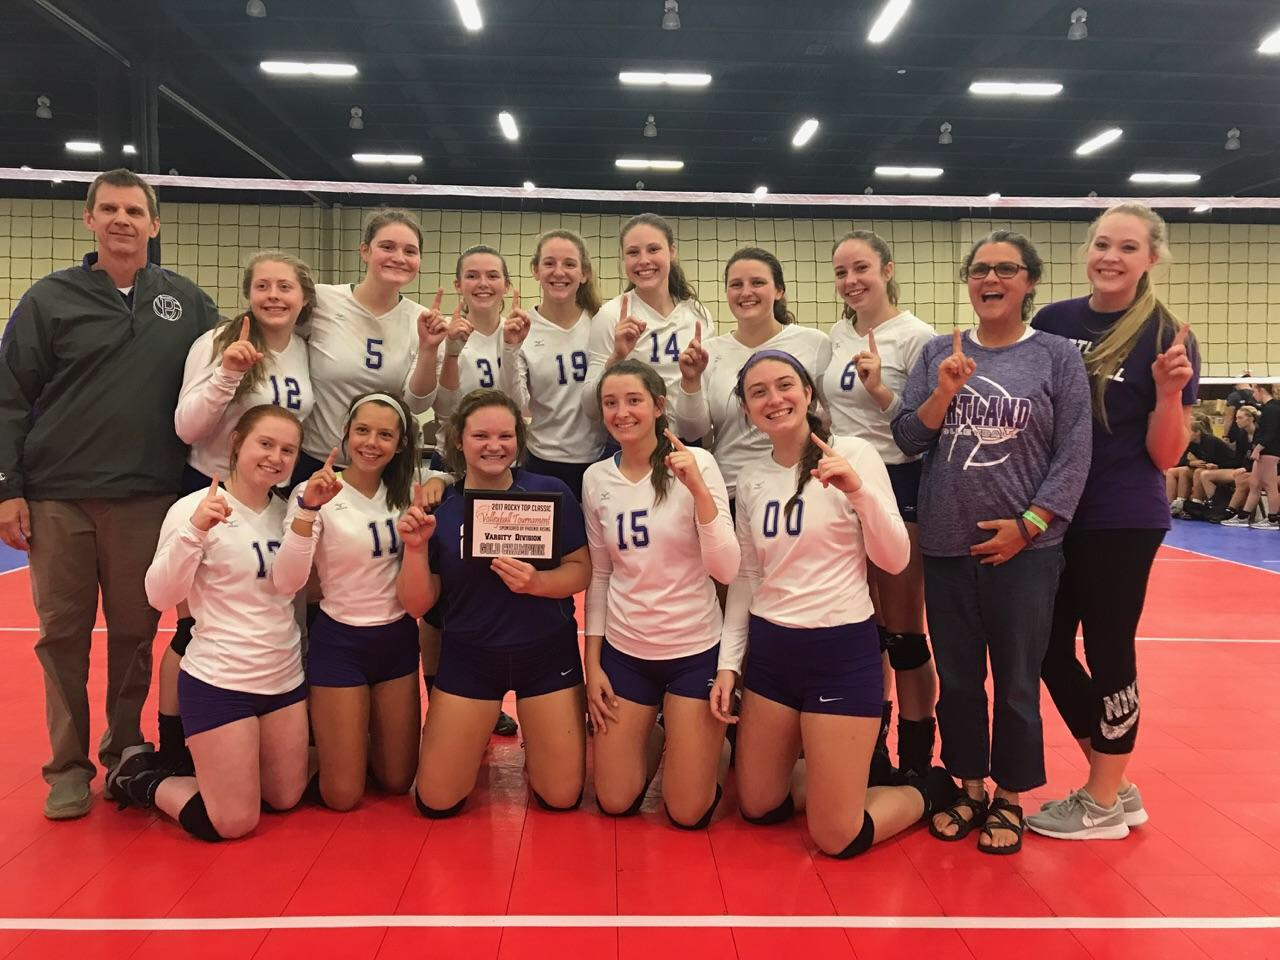 Panthers Win Rocky Top Volleyball Tournament